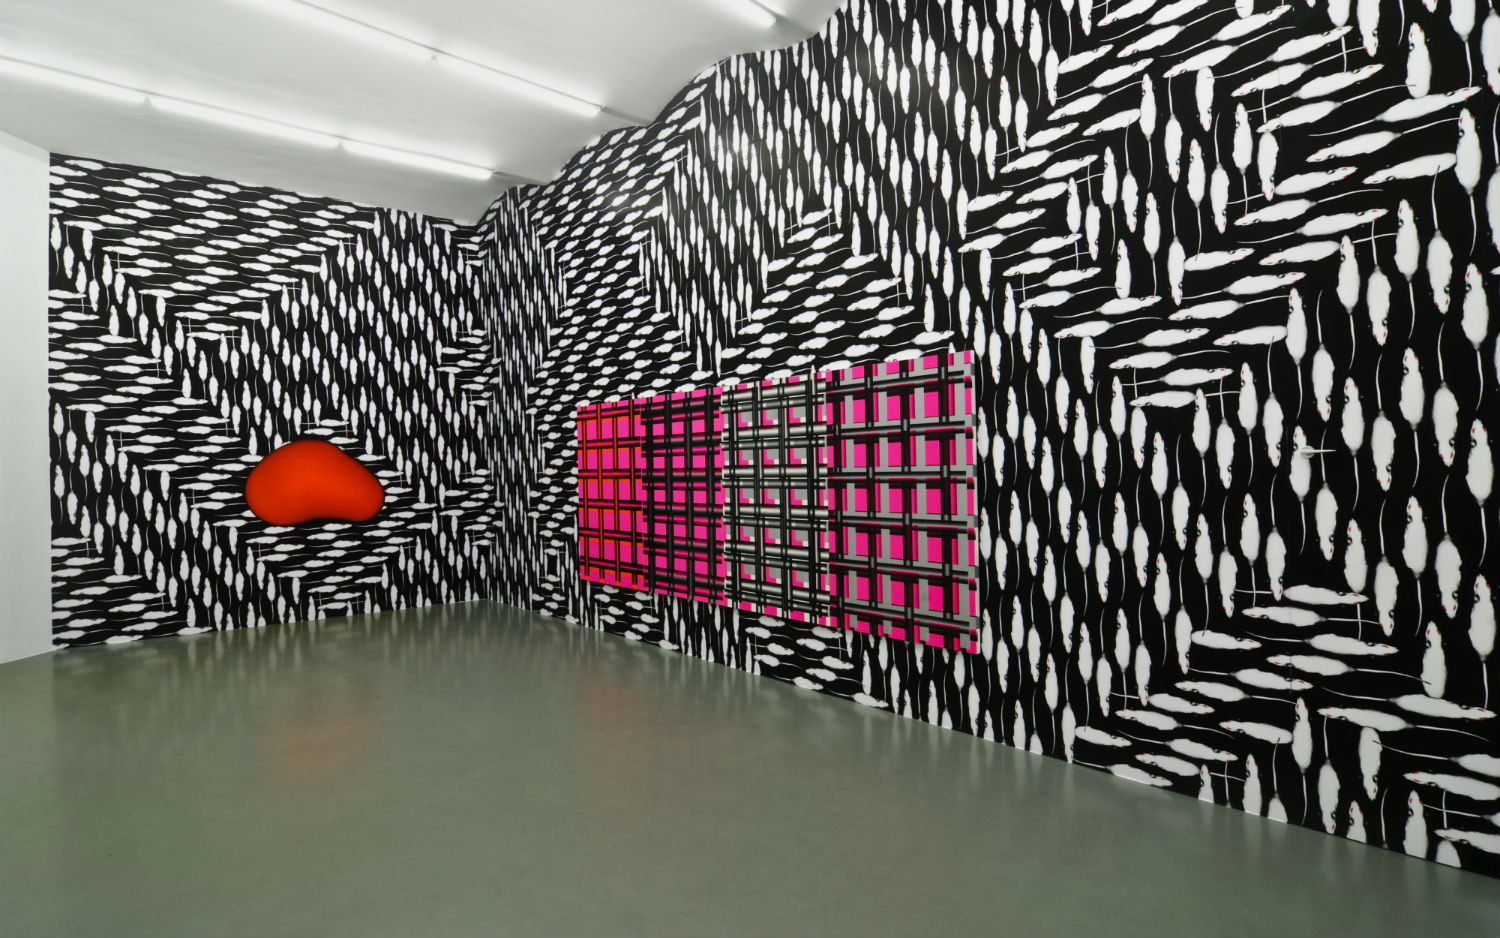 peter kogler spacial illusions walls interior